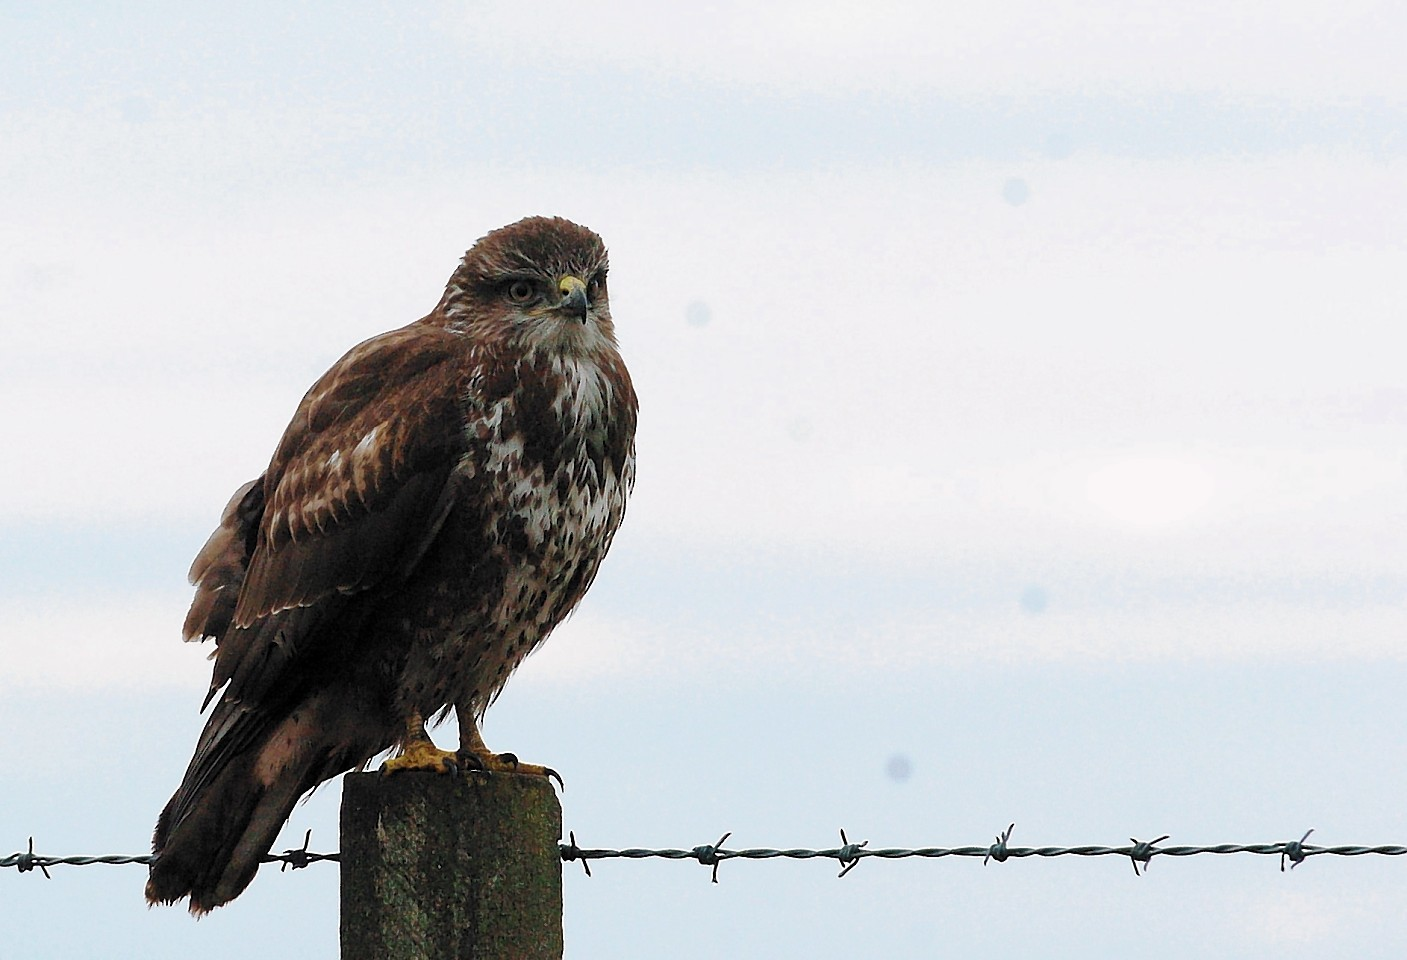 It is believed the bird could be a buzzard